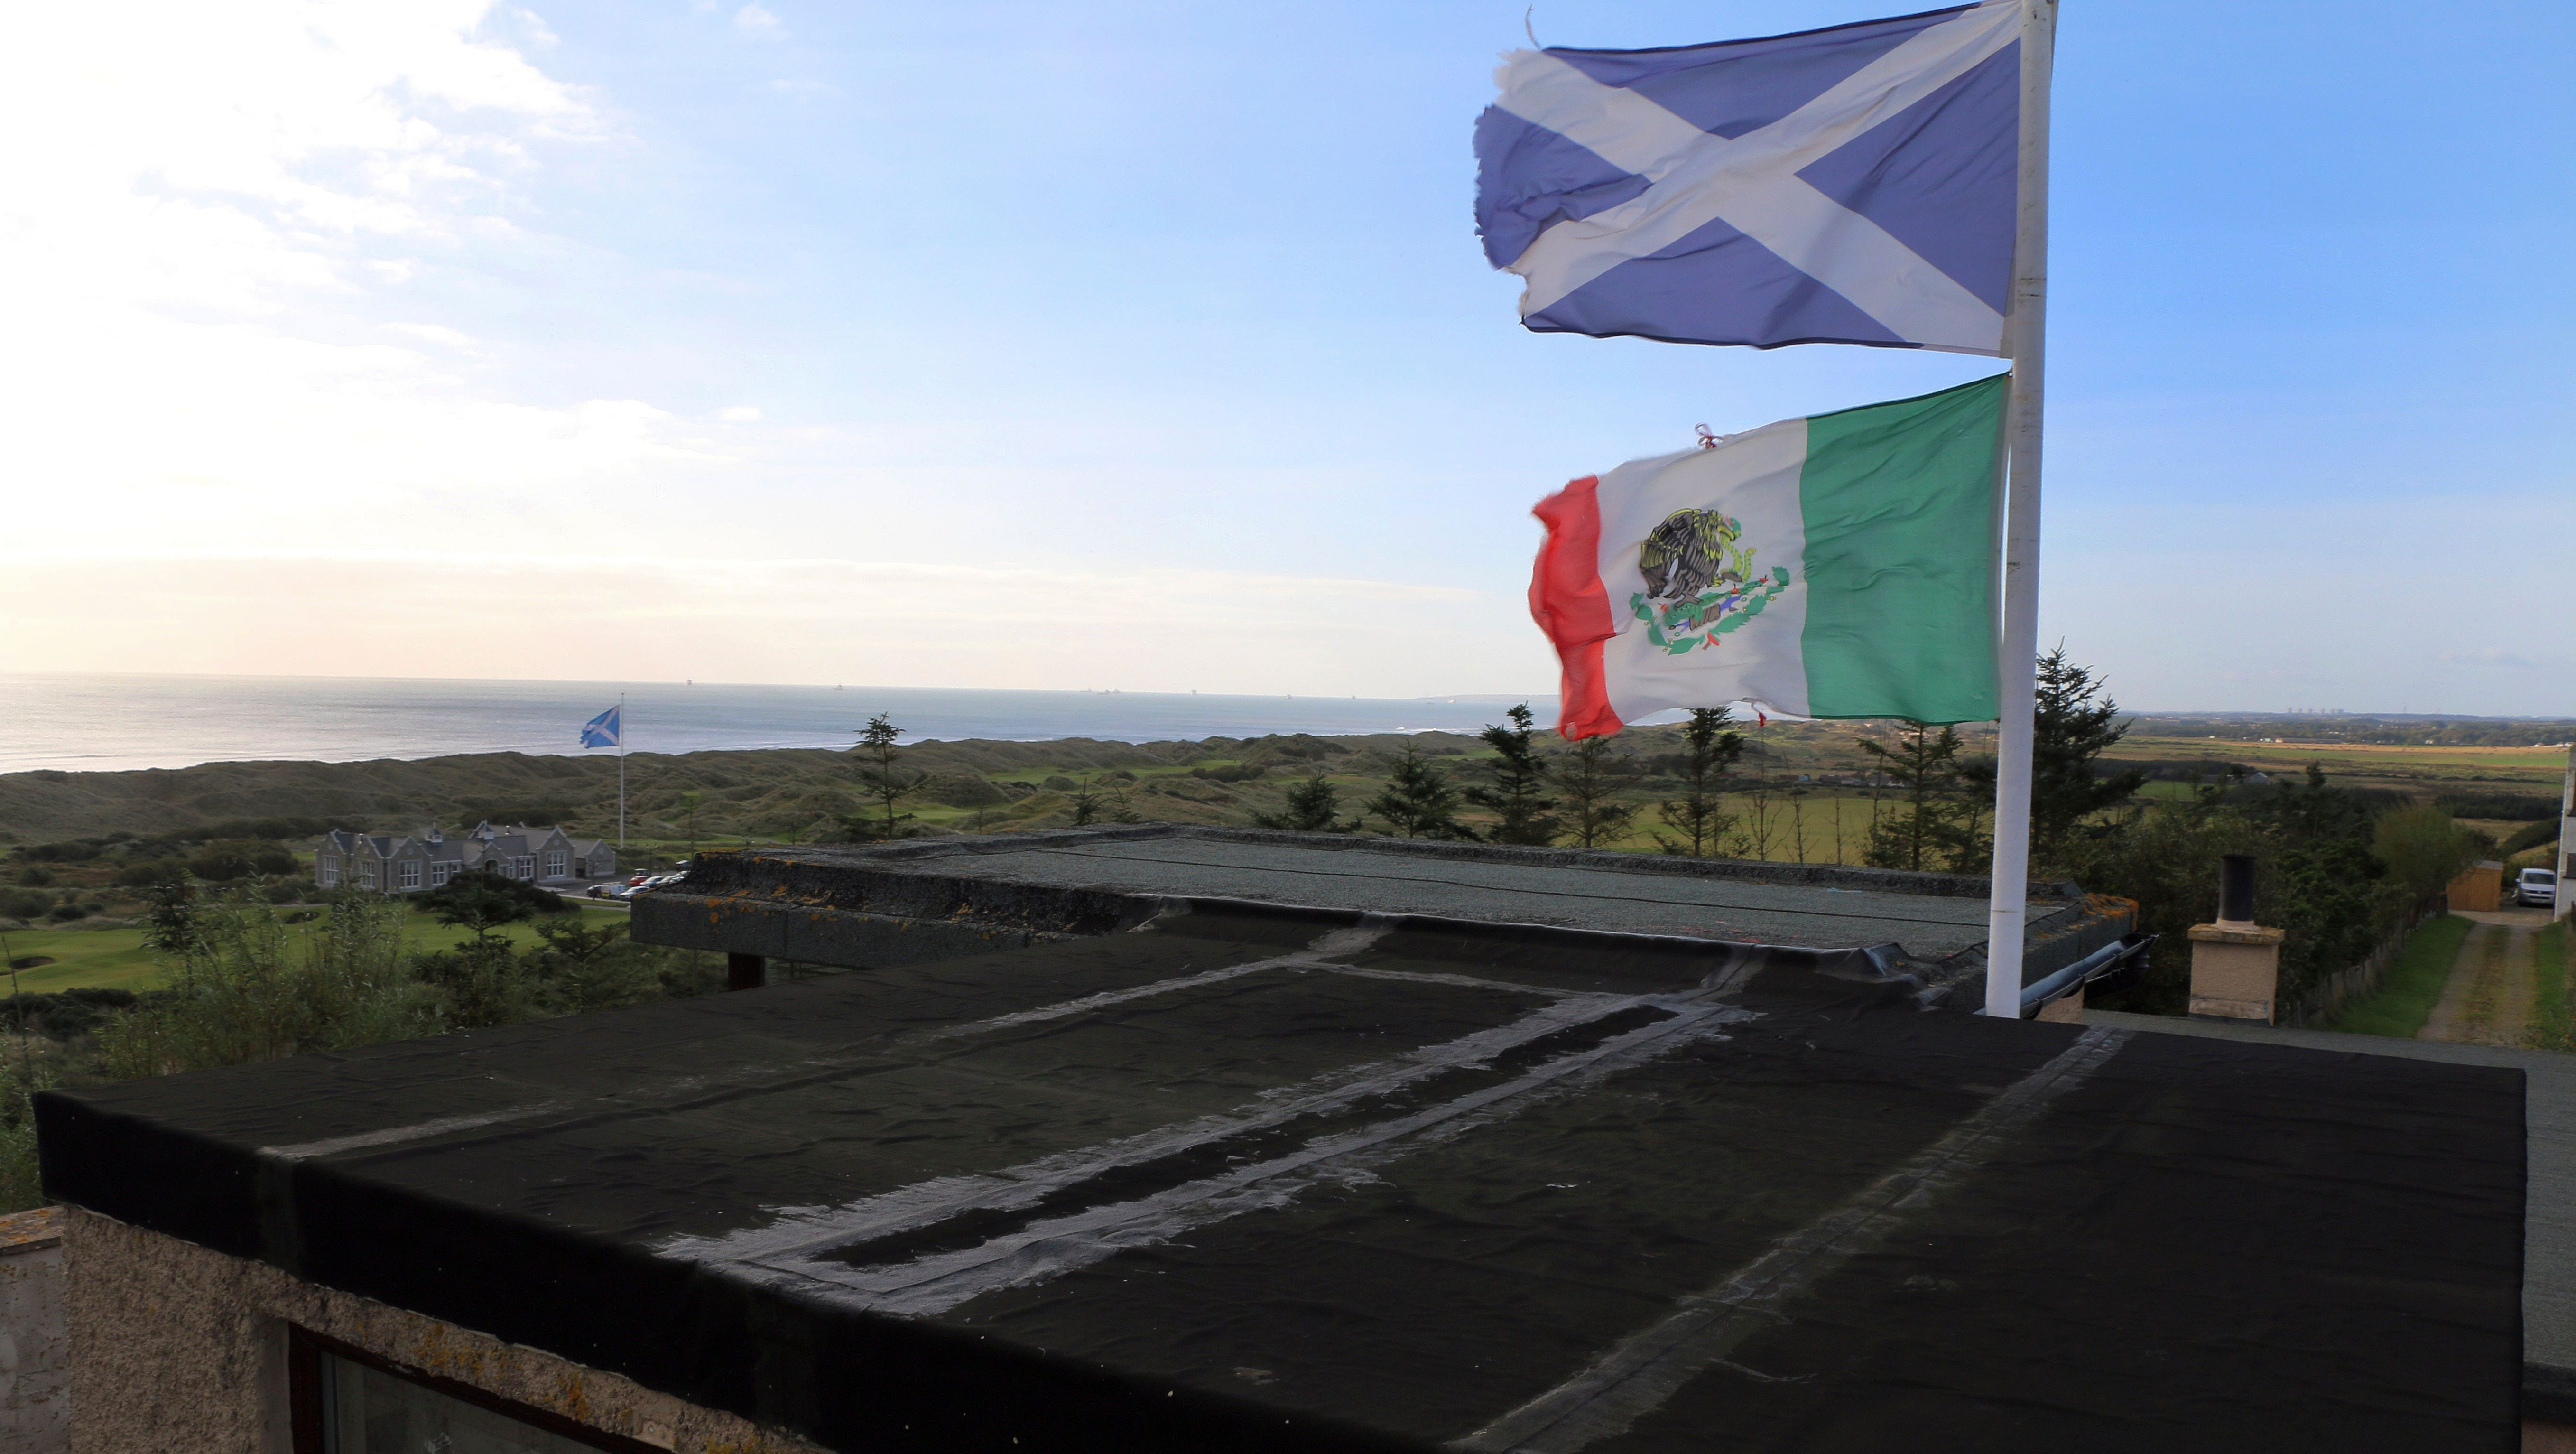 A Scottish flag, top, and the Mexican National flag fly from the home of David Milne overlooking the Trump International golf course., Friday Oct. 6, 2017. Feelings toward President Donald Trump run from anger to praise in Scotland where the troubles for the president's two golf clubs have only mounted recently. A financial report filed with the British government shows Trump is losing millions for a third year in a row. Shortly before Trump visited his North Sea resort in June last year, Milne ran a Mexican flag up a pole in protest against his immigration policies. (AP Photo/Renee Graham)